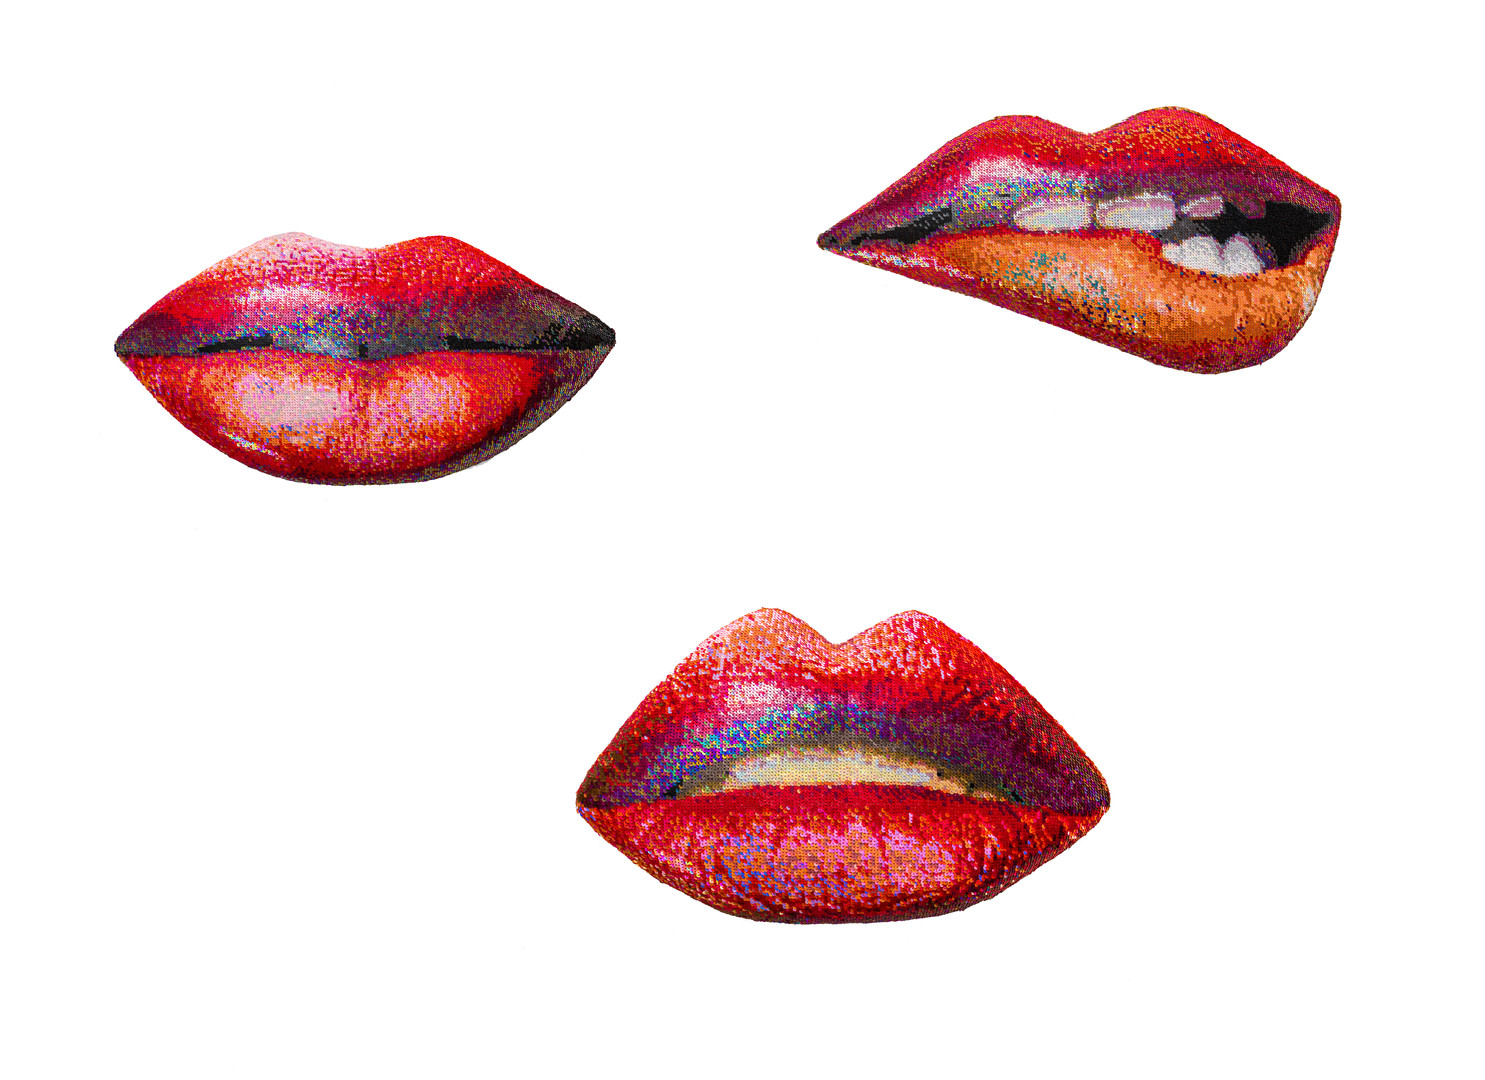 Frances Goodman | Sequin Lips Series | 2020 | Hand-Stitched Sequins on Canvas, Board, Foam | Dimensions Variable | Edition of 3 Each